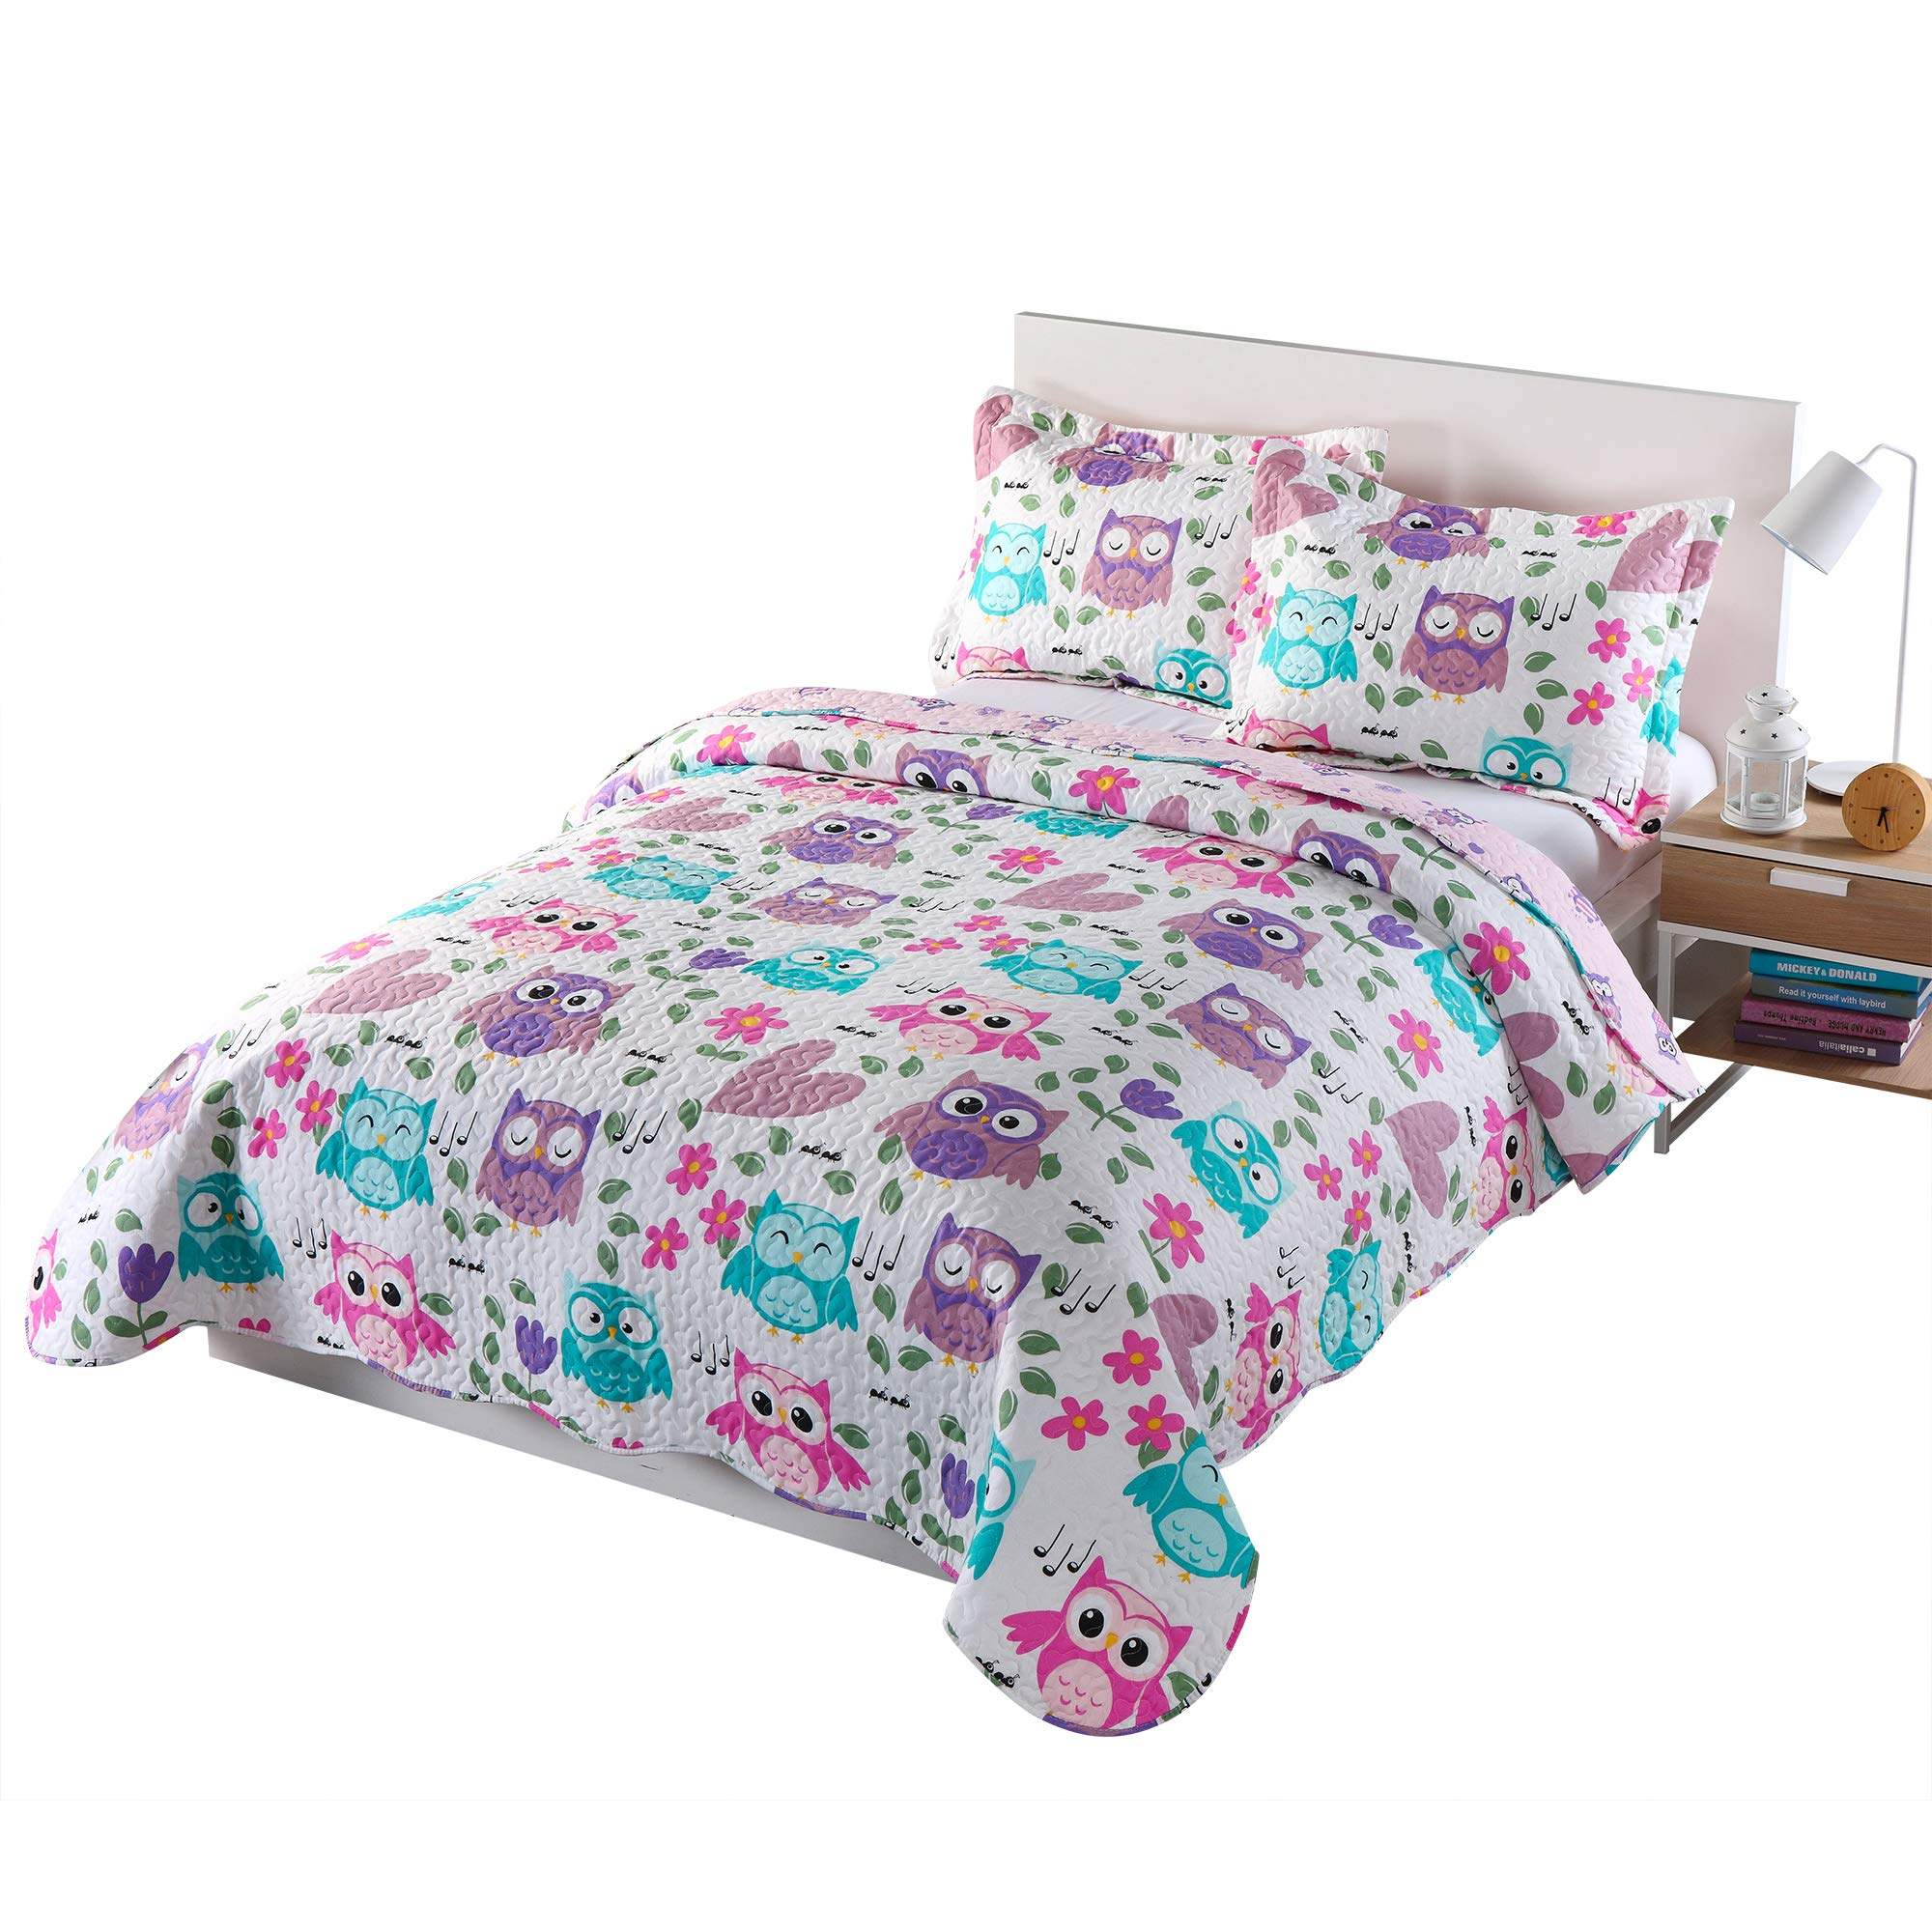 MarCielo 3 Piece Kids Bedspread Quilts Set Throw Blanket for Teens Boys Girls Bed Printed Bedding Coverlet, Full Size, Purple Hoot (Full) by MarCielo